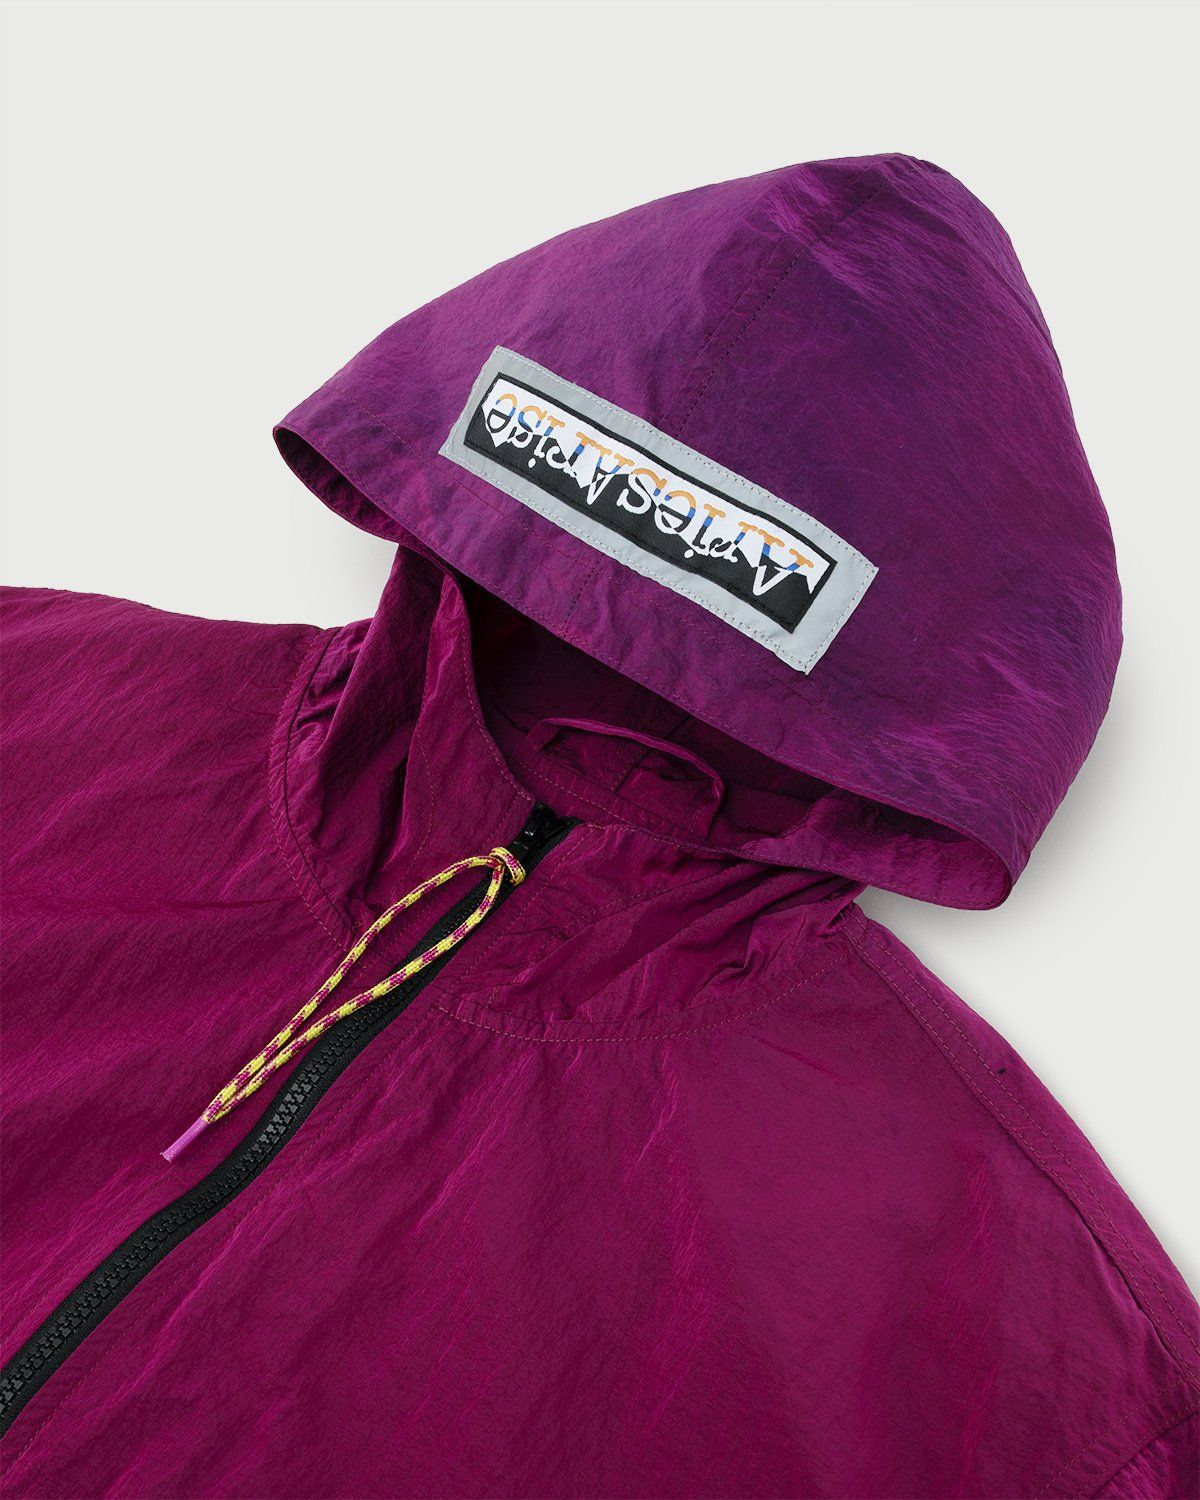 Aries — Ombre Dyed Tech Jacket Fuchsia - Image 2